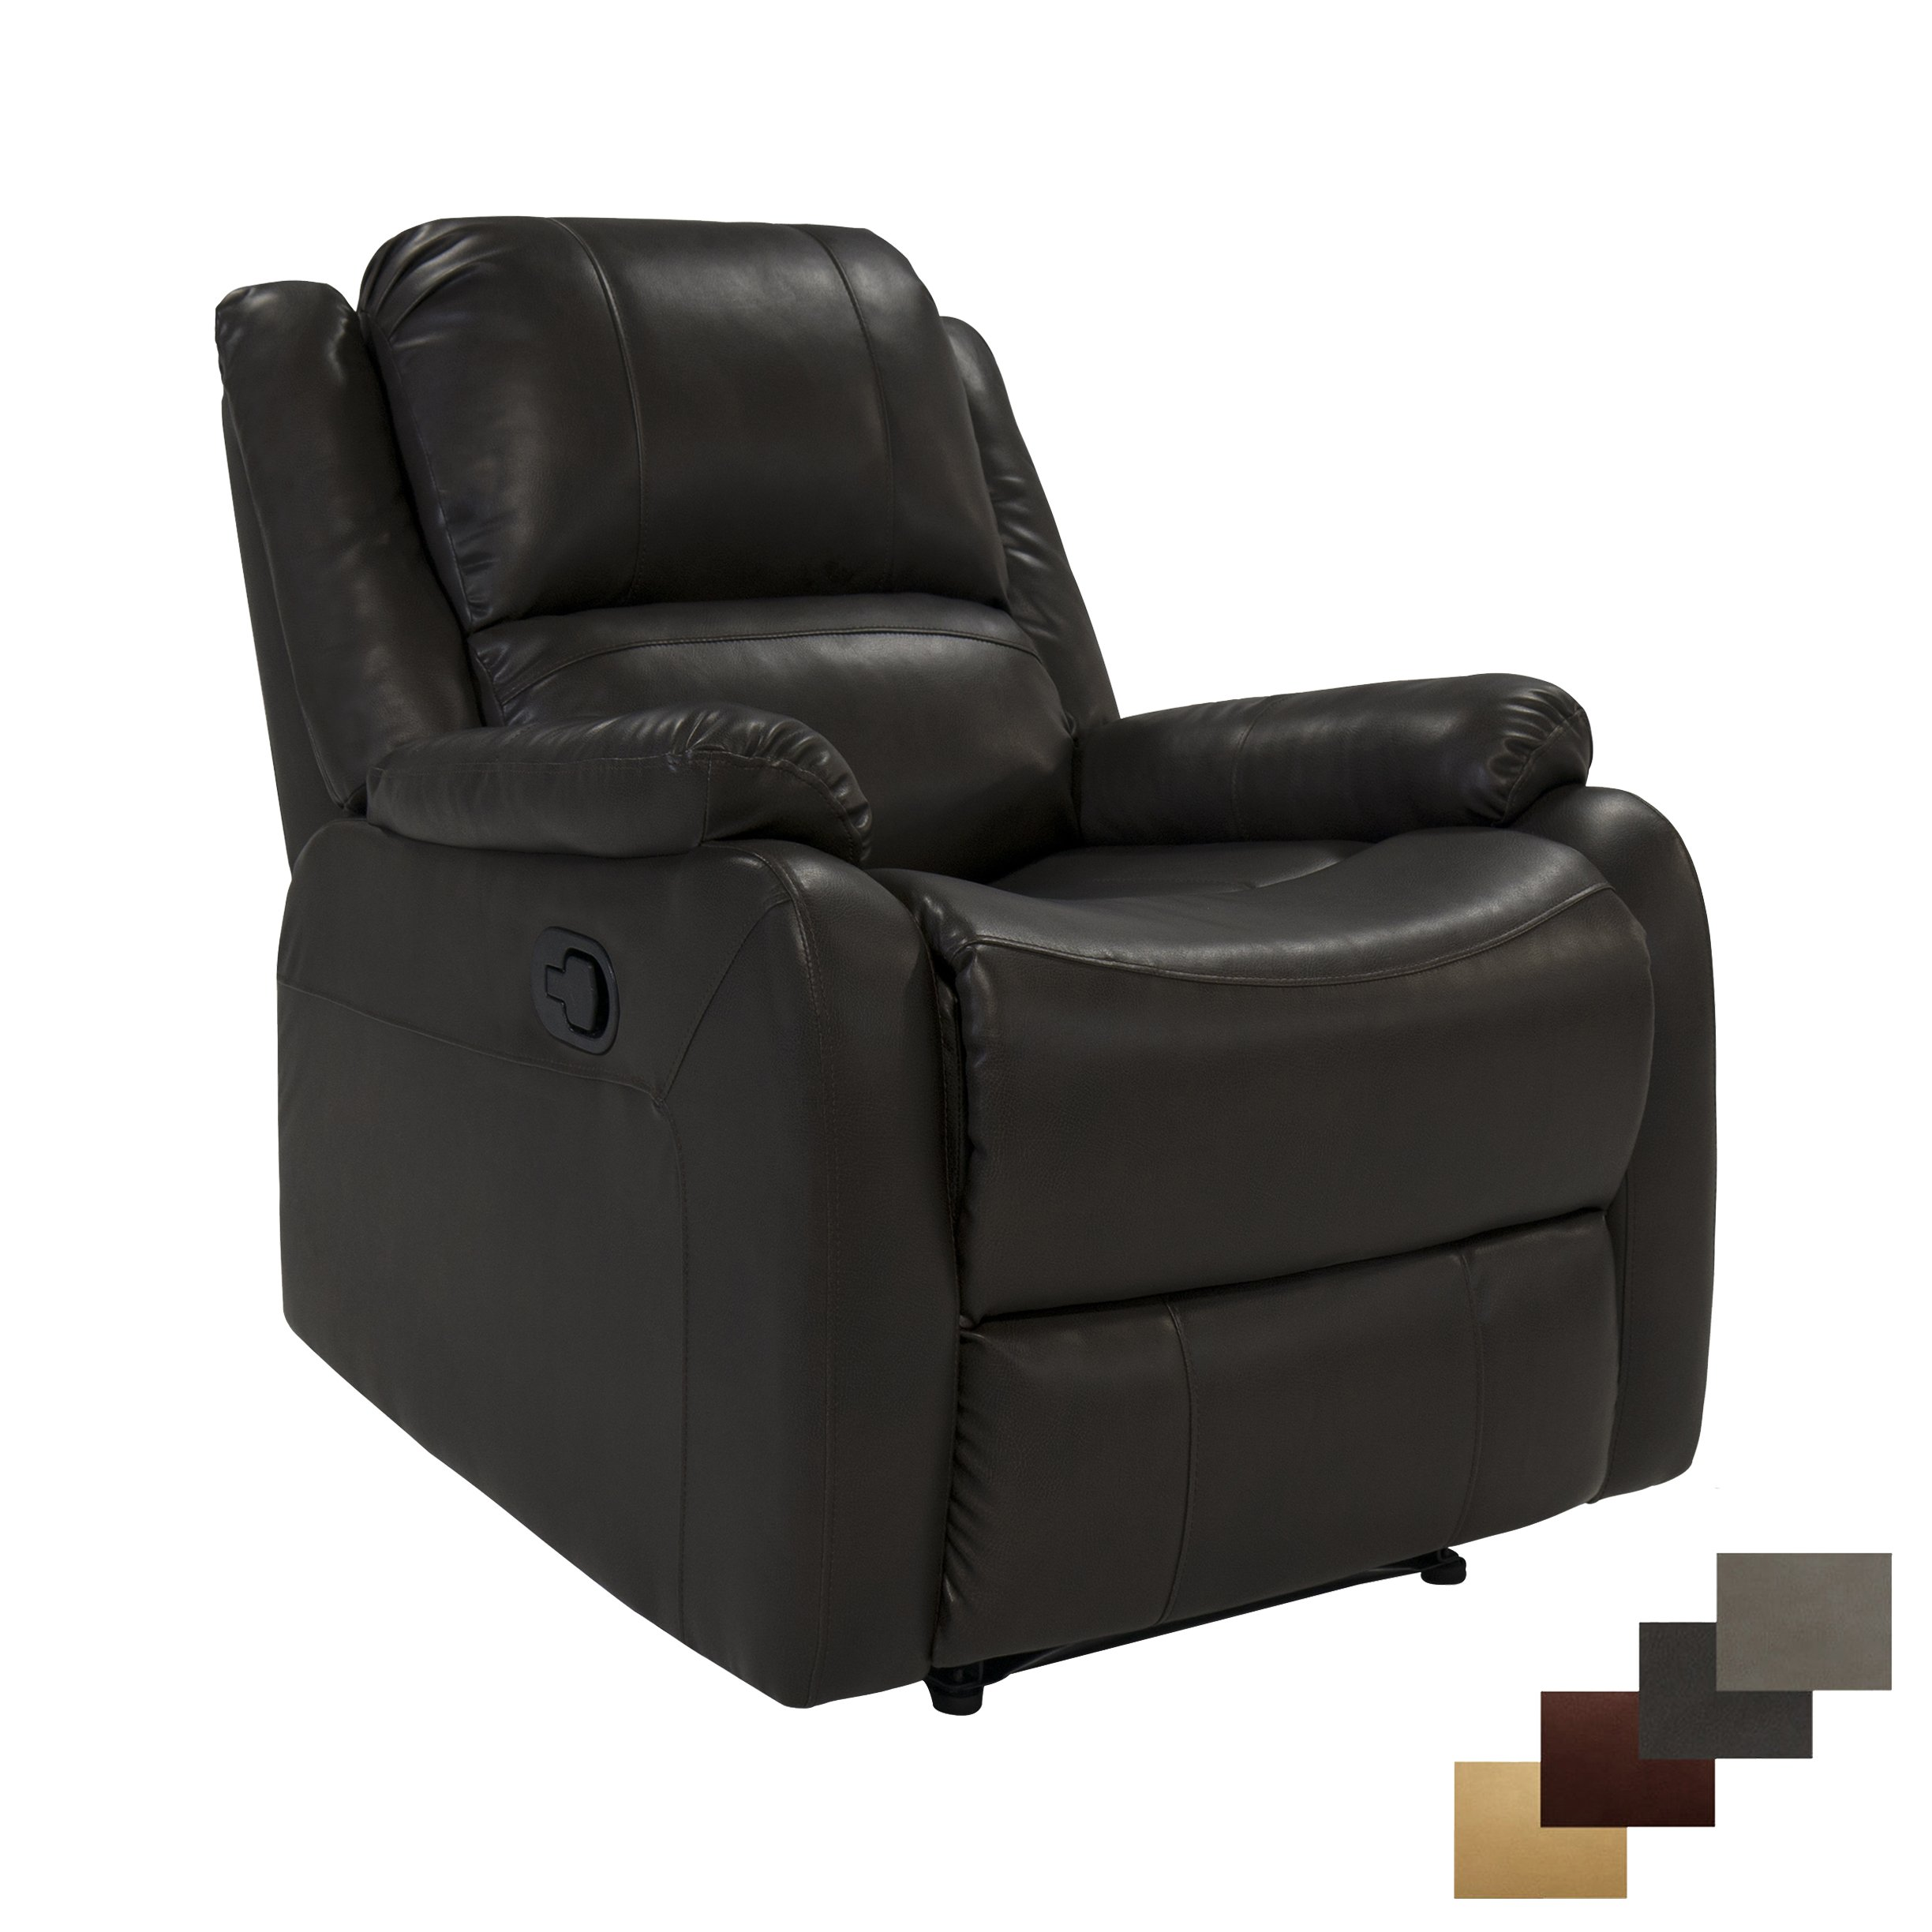 Charles Ashton Home Collection | 30'' Handicap Power Lift Chair | Power Lift Recliner | Classic Design | Space Saving Design for Apartment | Perfect for Tiny Home or Dorm Room | (Chestnut)